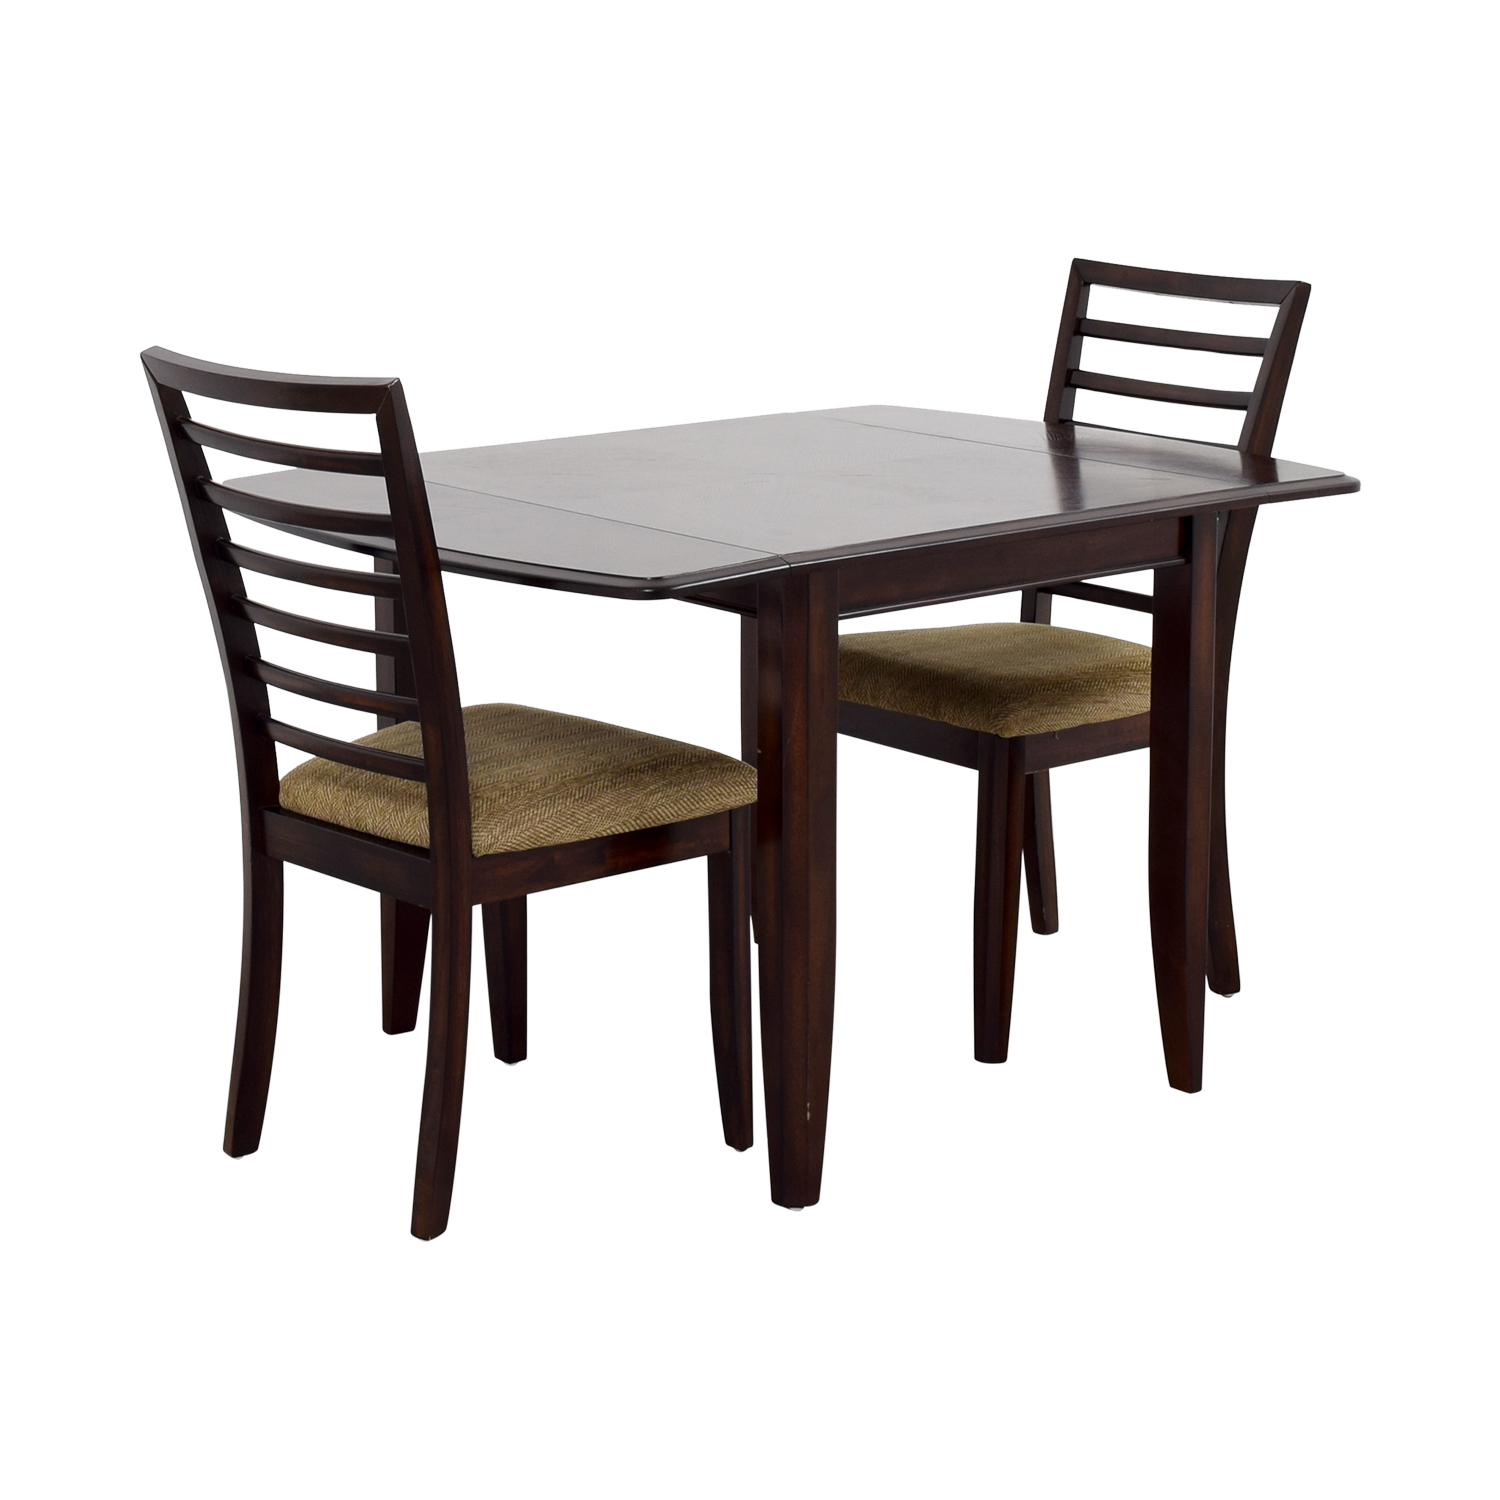 Raymour and Flanigan Raymour and Flanigan Chace Extendable Dining Set price